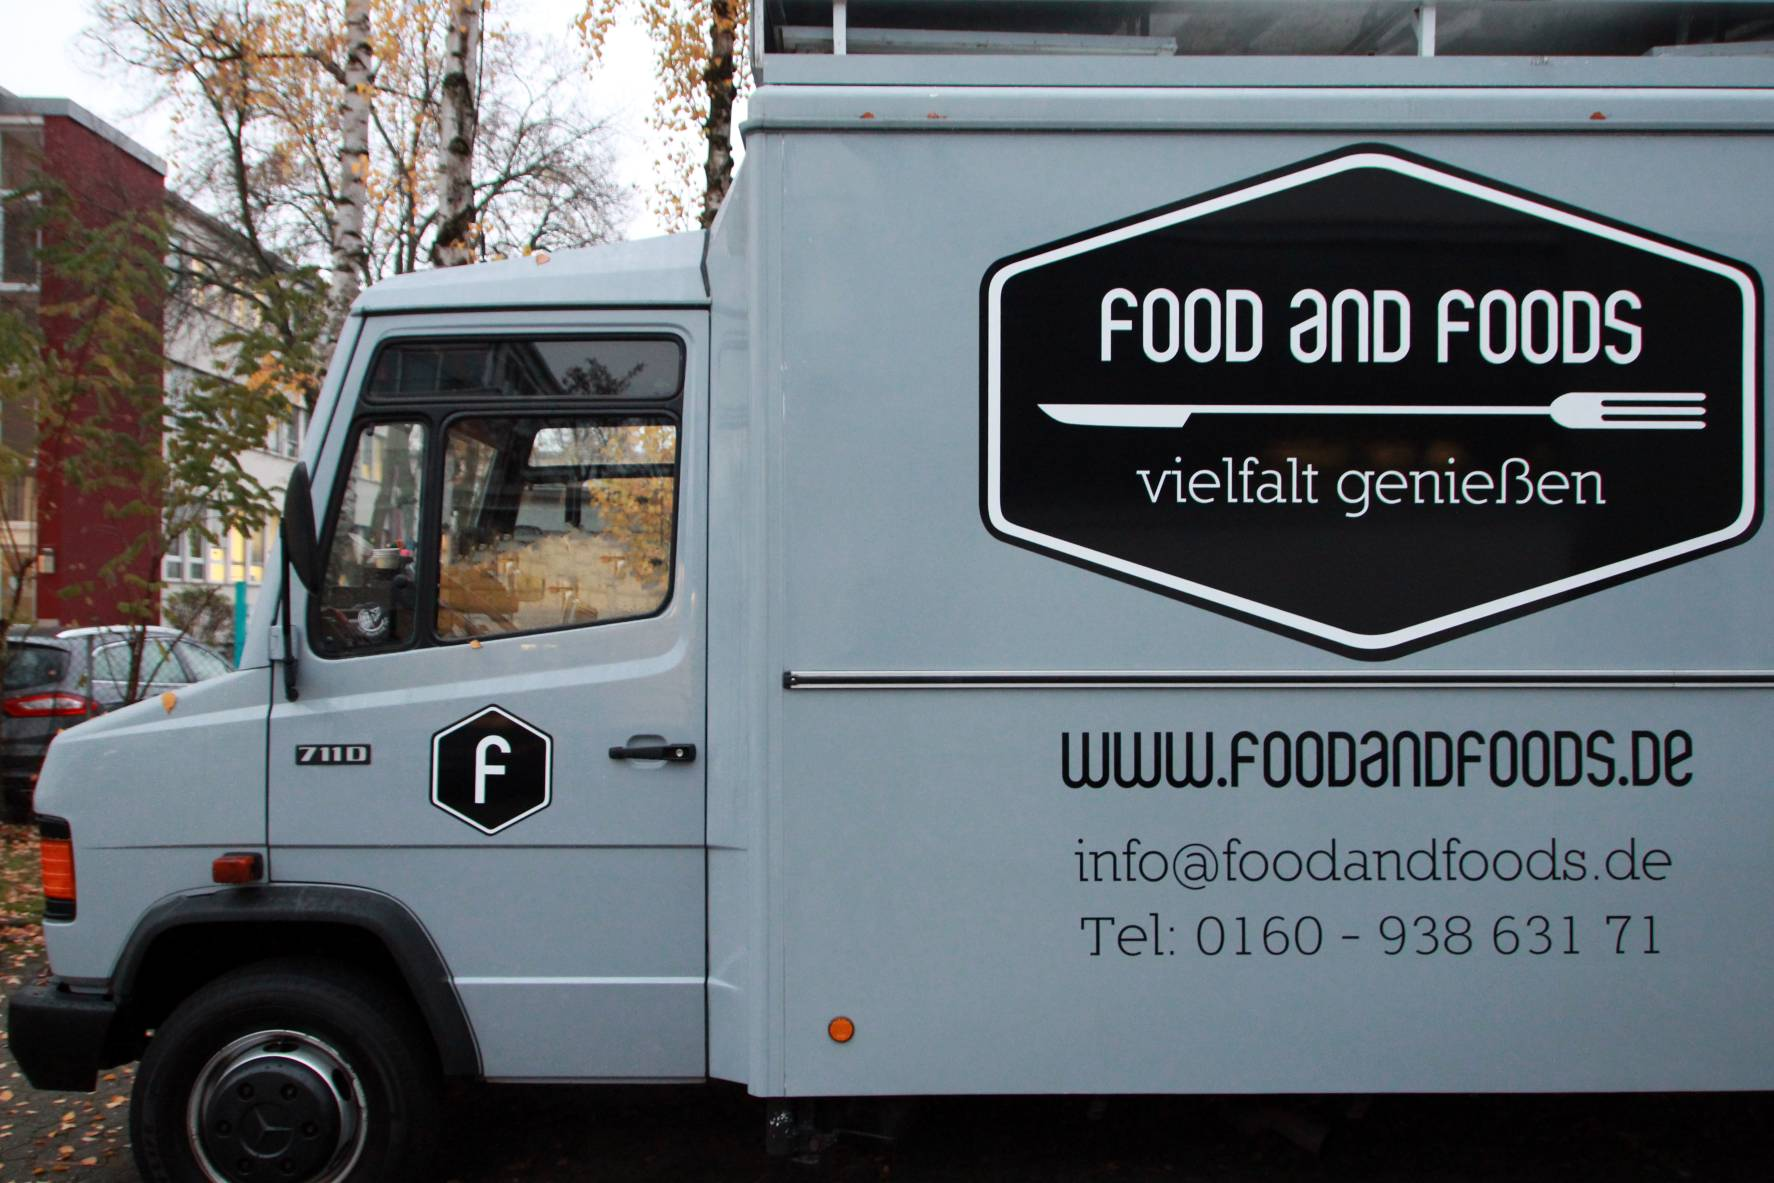 absolut_events_fahrzeuge_food_truck_food_and_foods